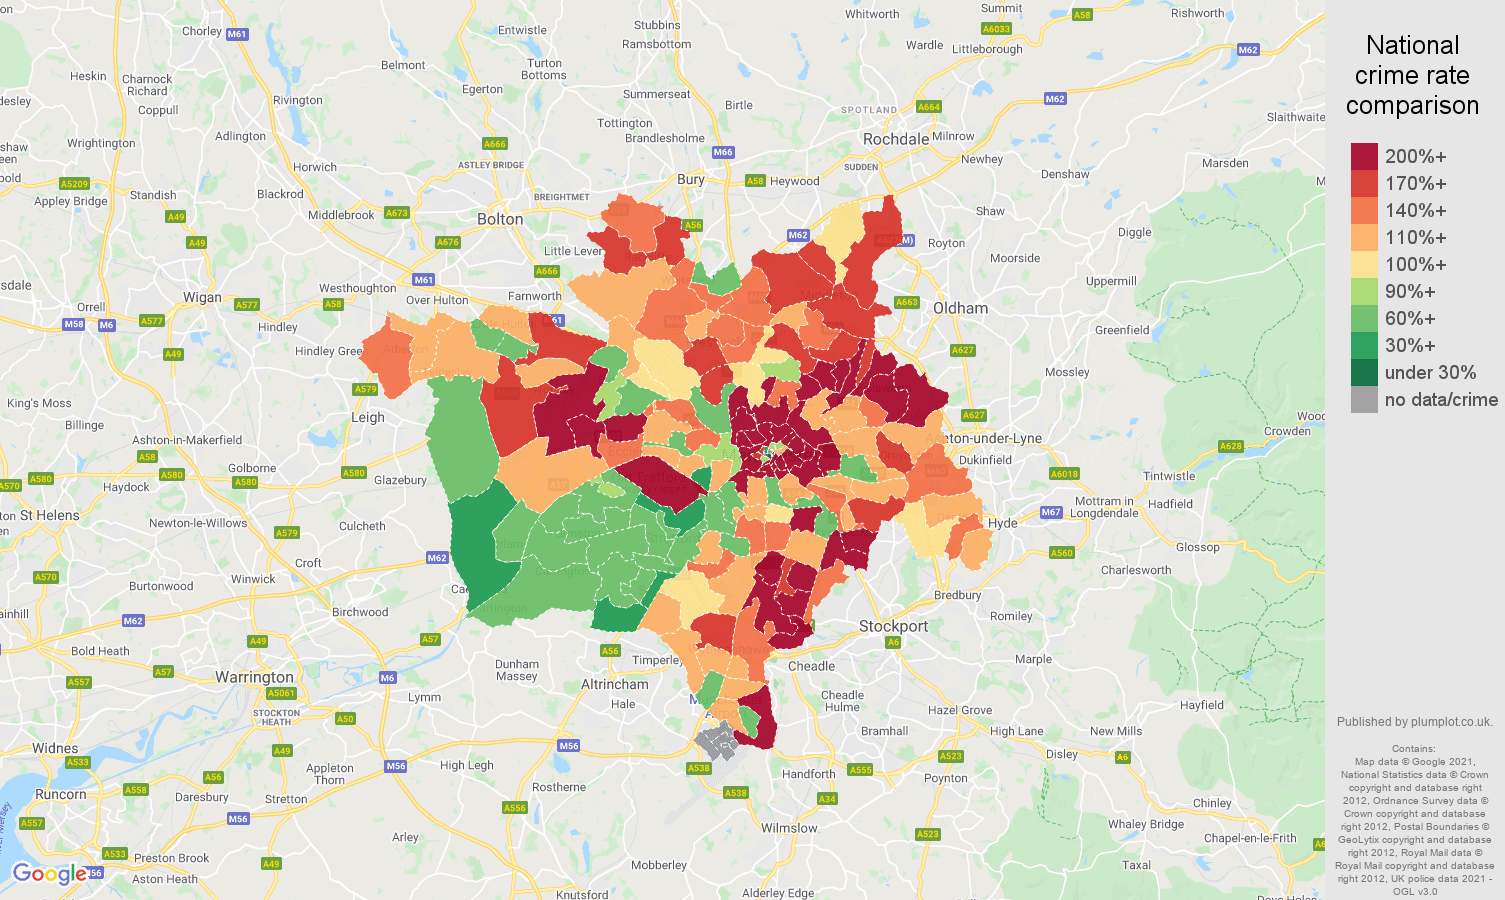 Manchester vehicle crime rate comparison map